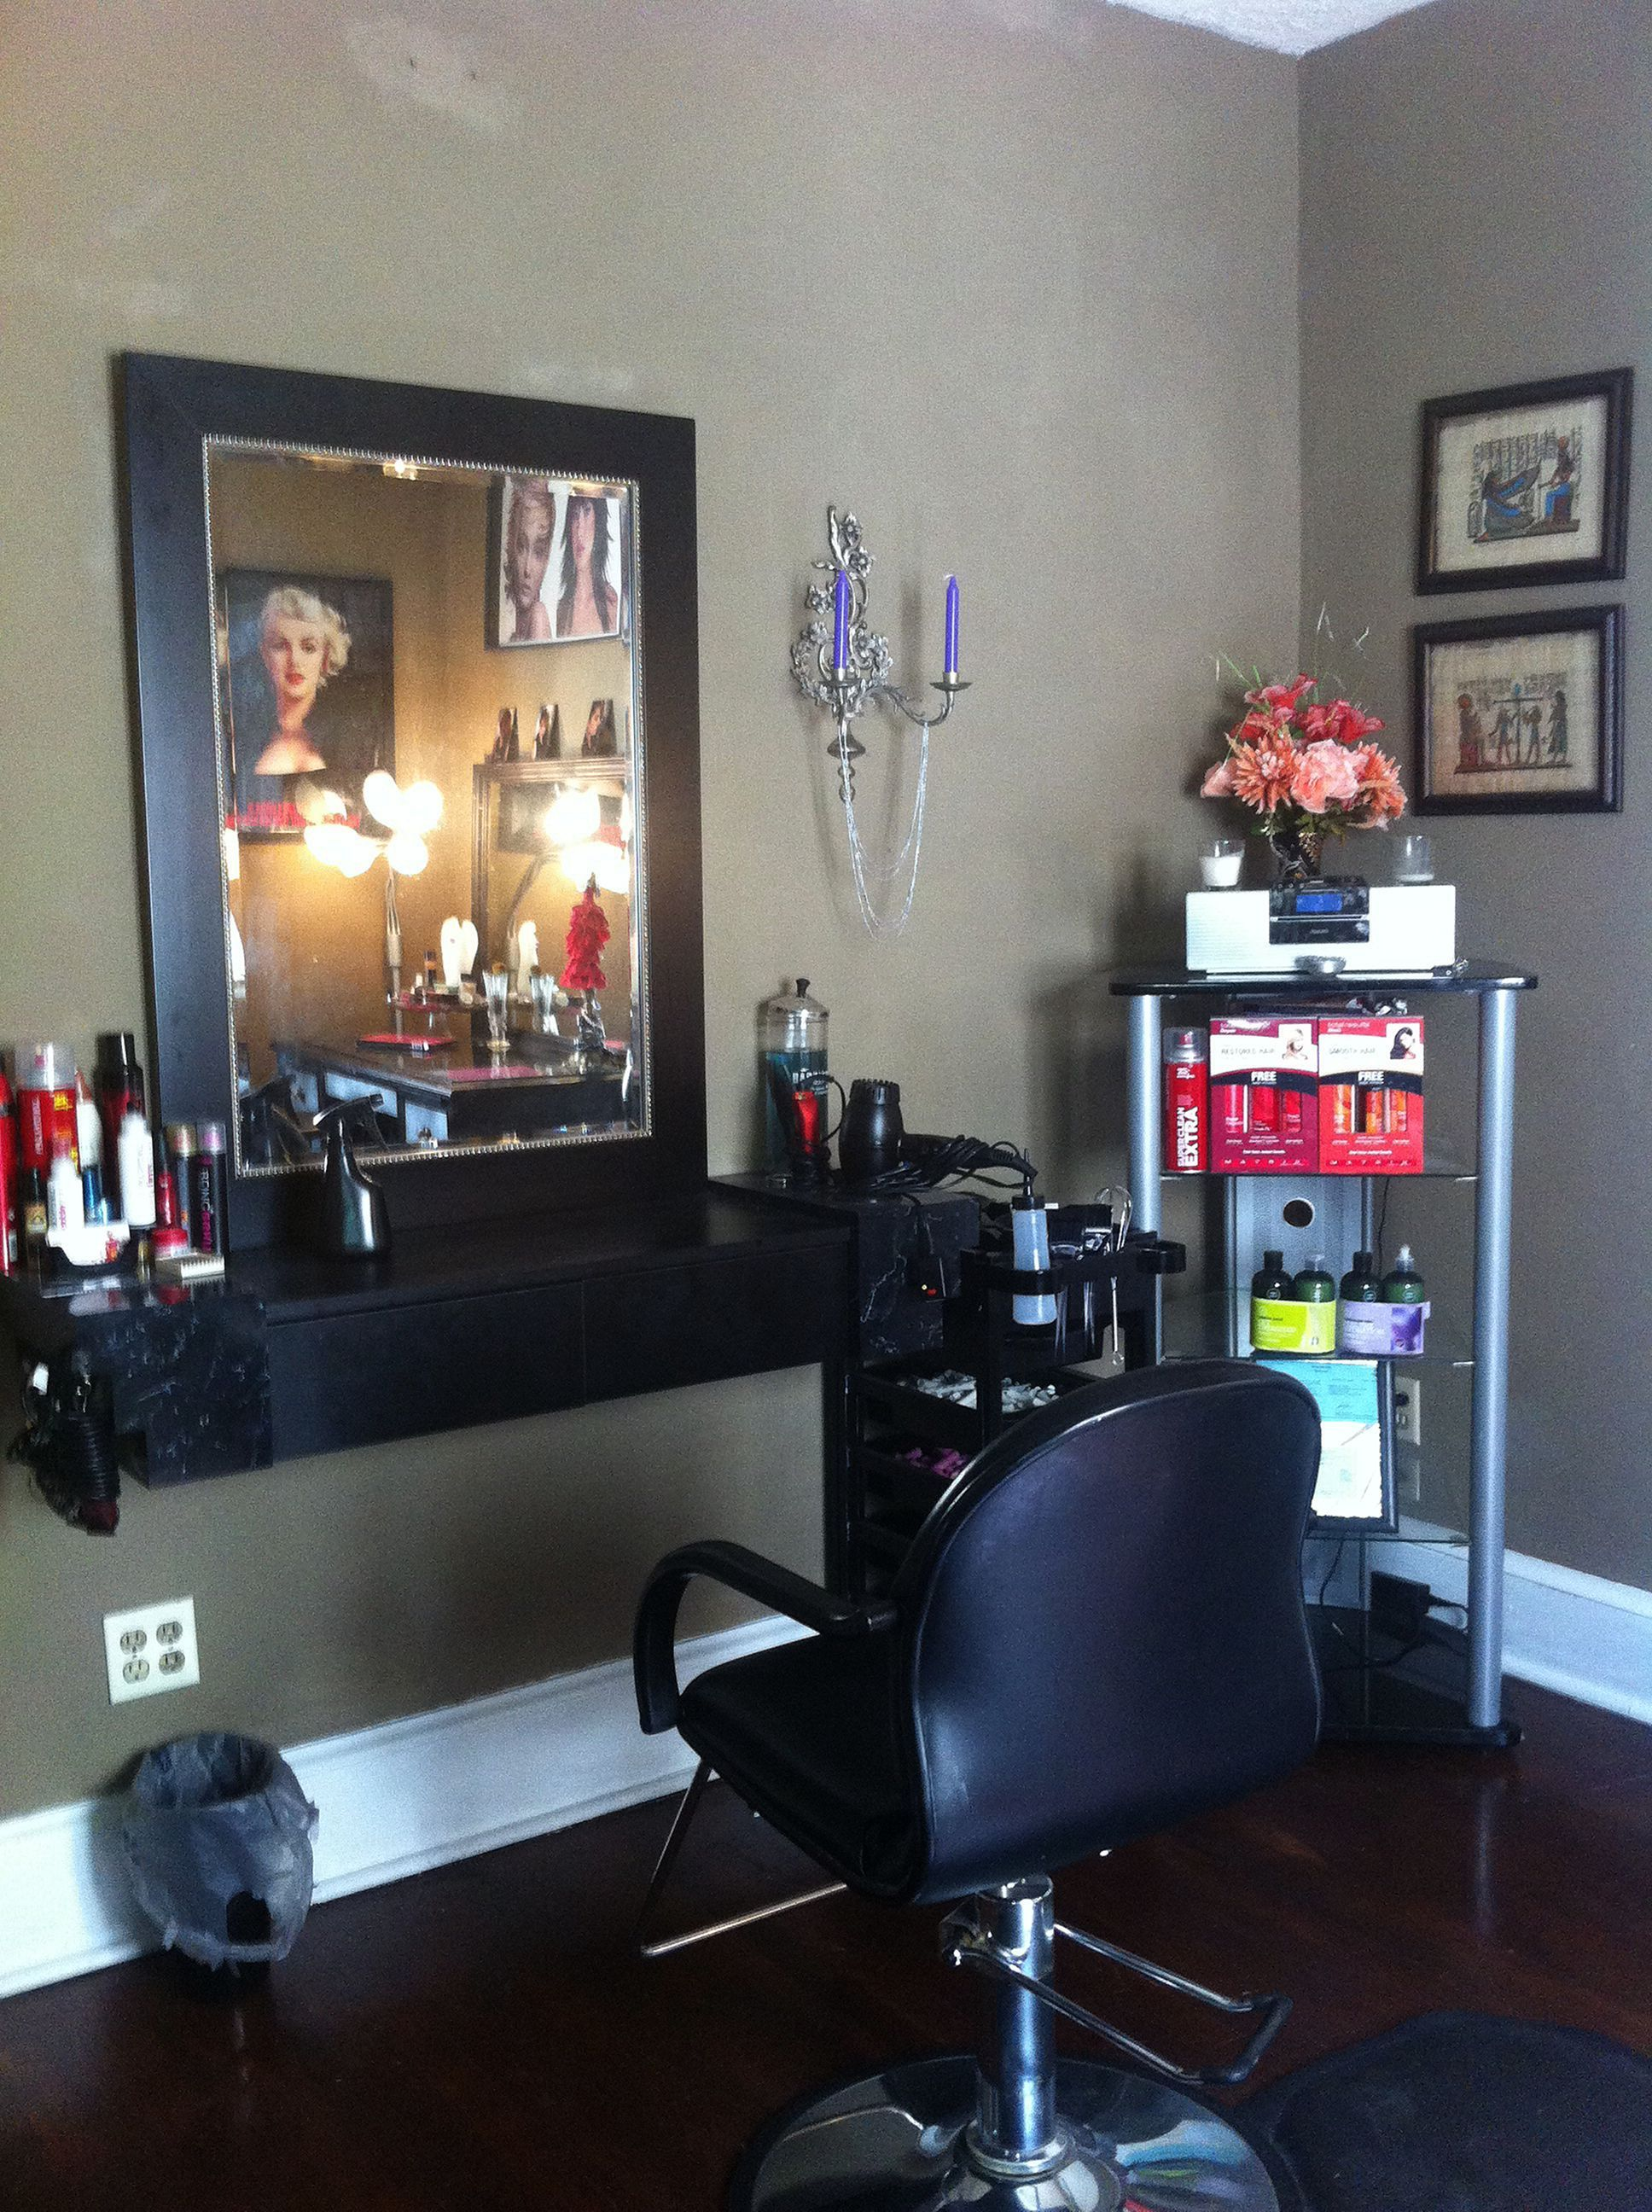 Design You Room: 46+ Best Home Salon Decor Ideas For Private Salon On Your